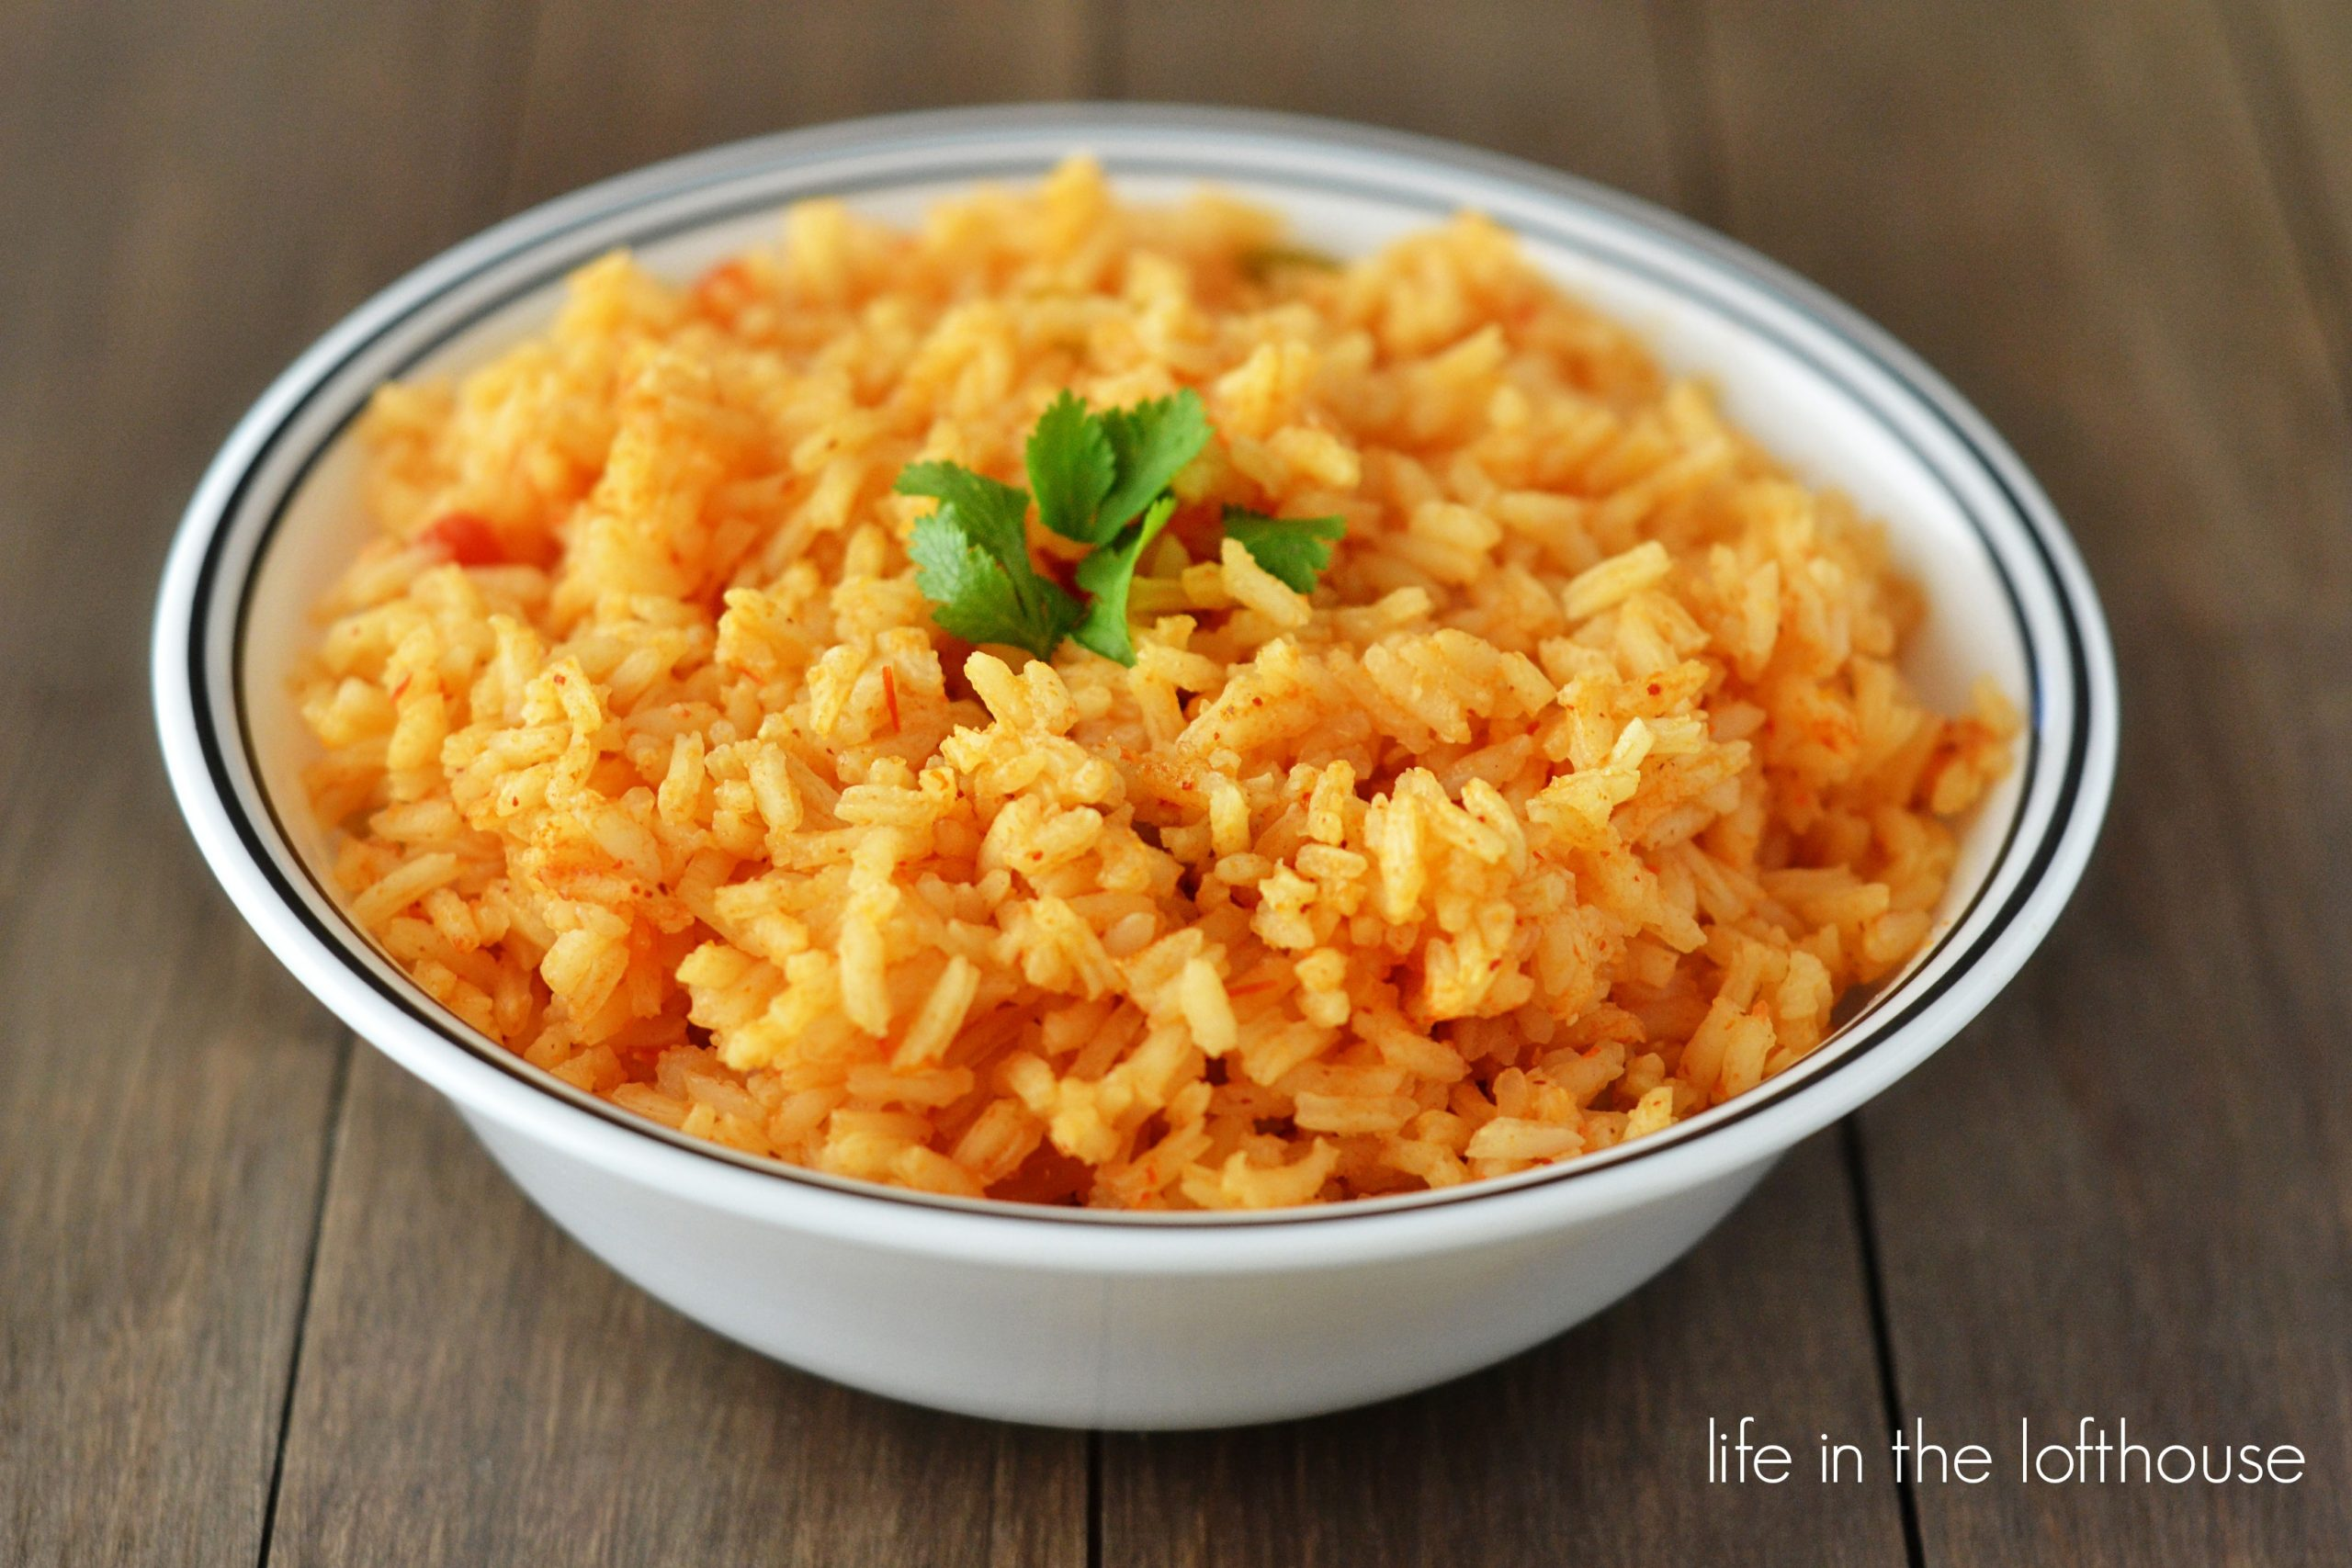 mexican-rice-p2.jpg 3,318×2,212 pixels | Food | Pinterest